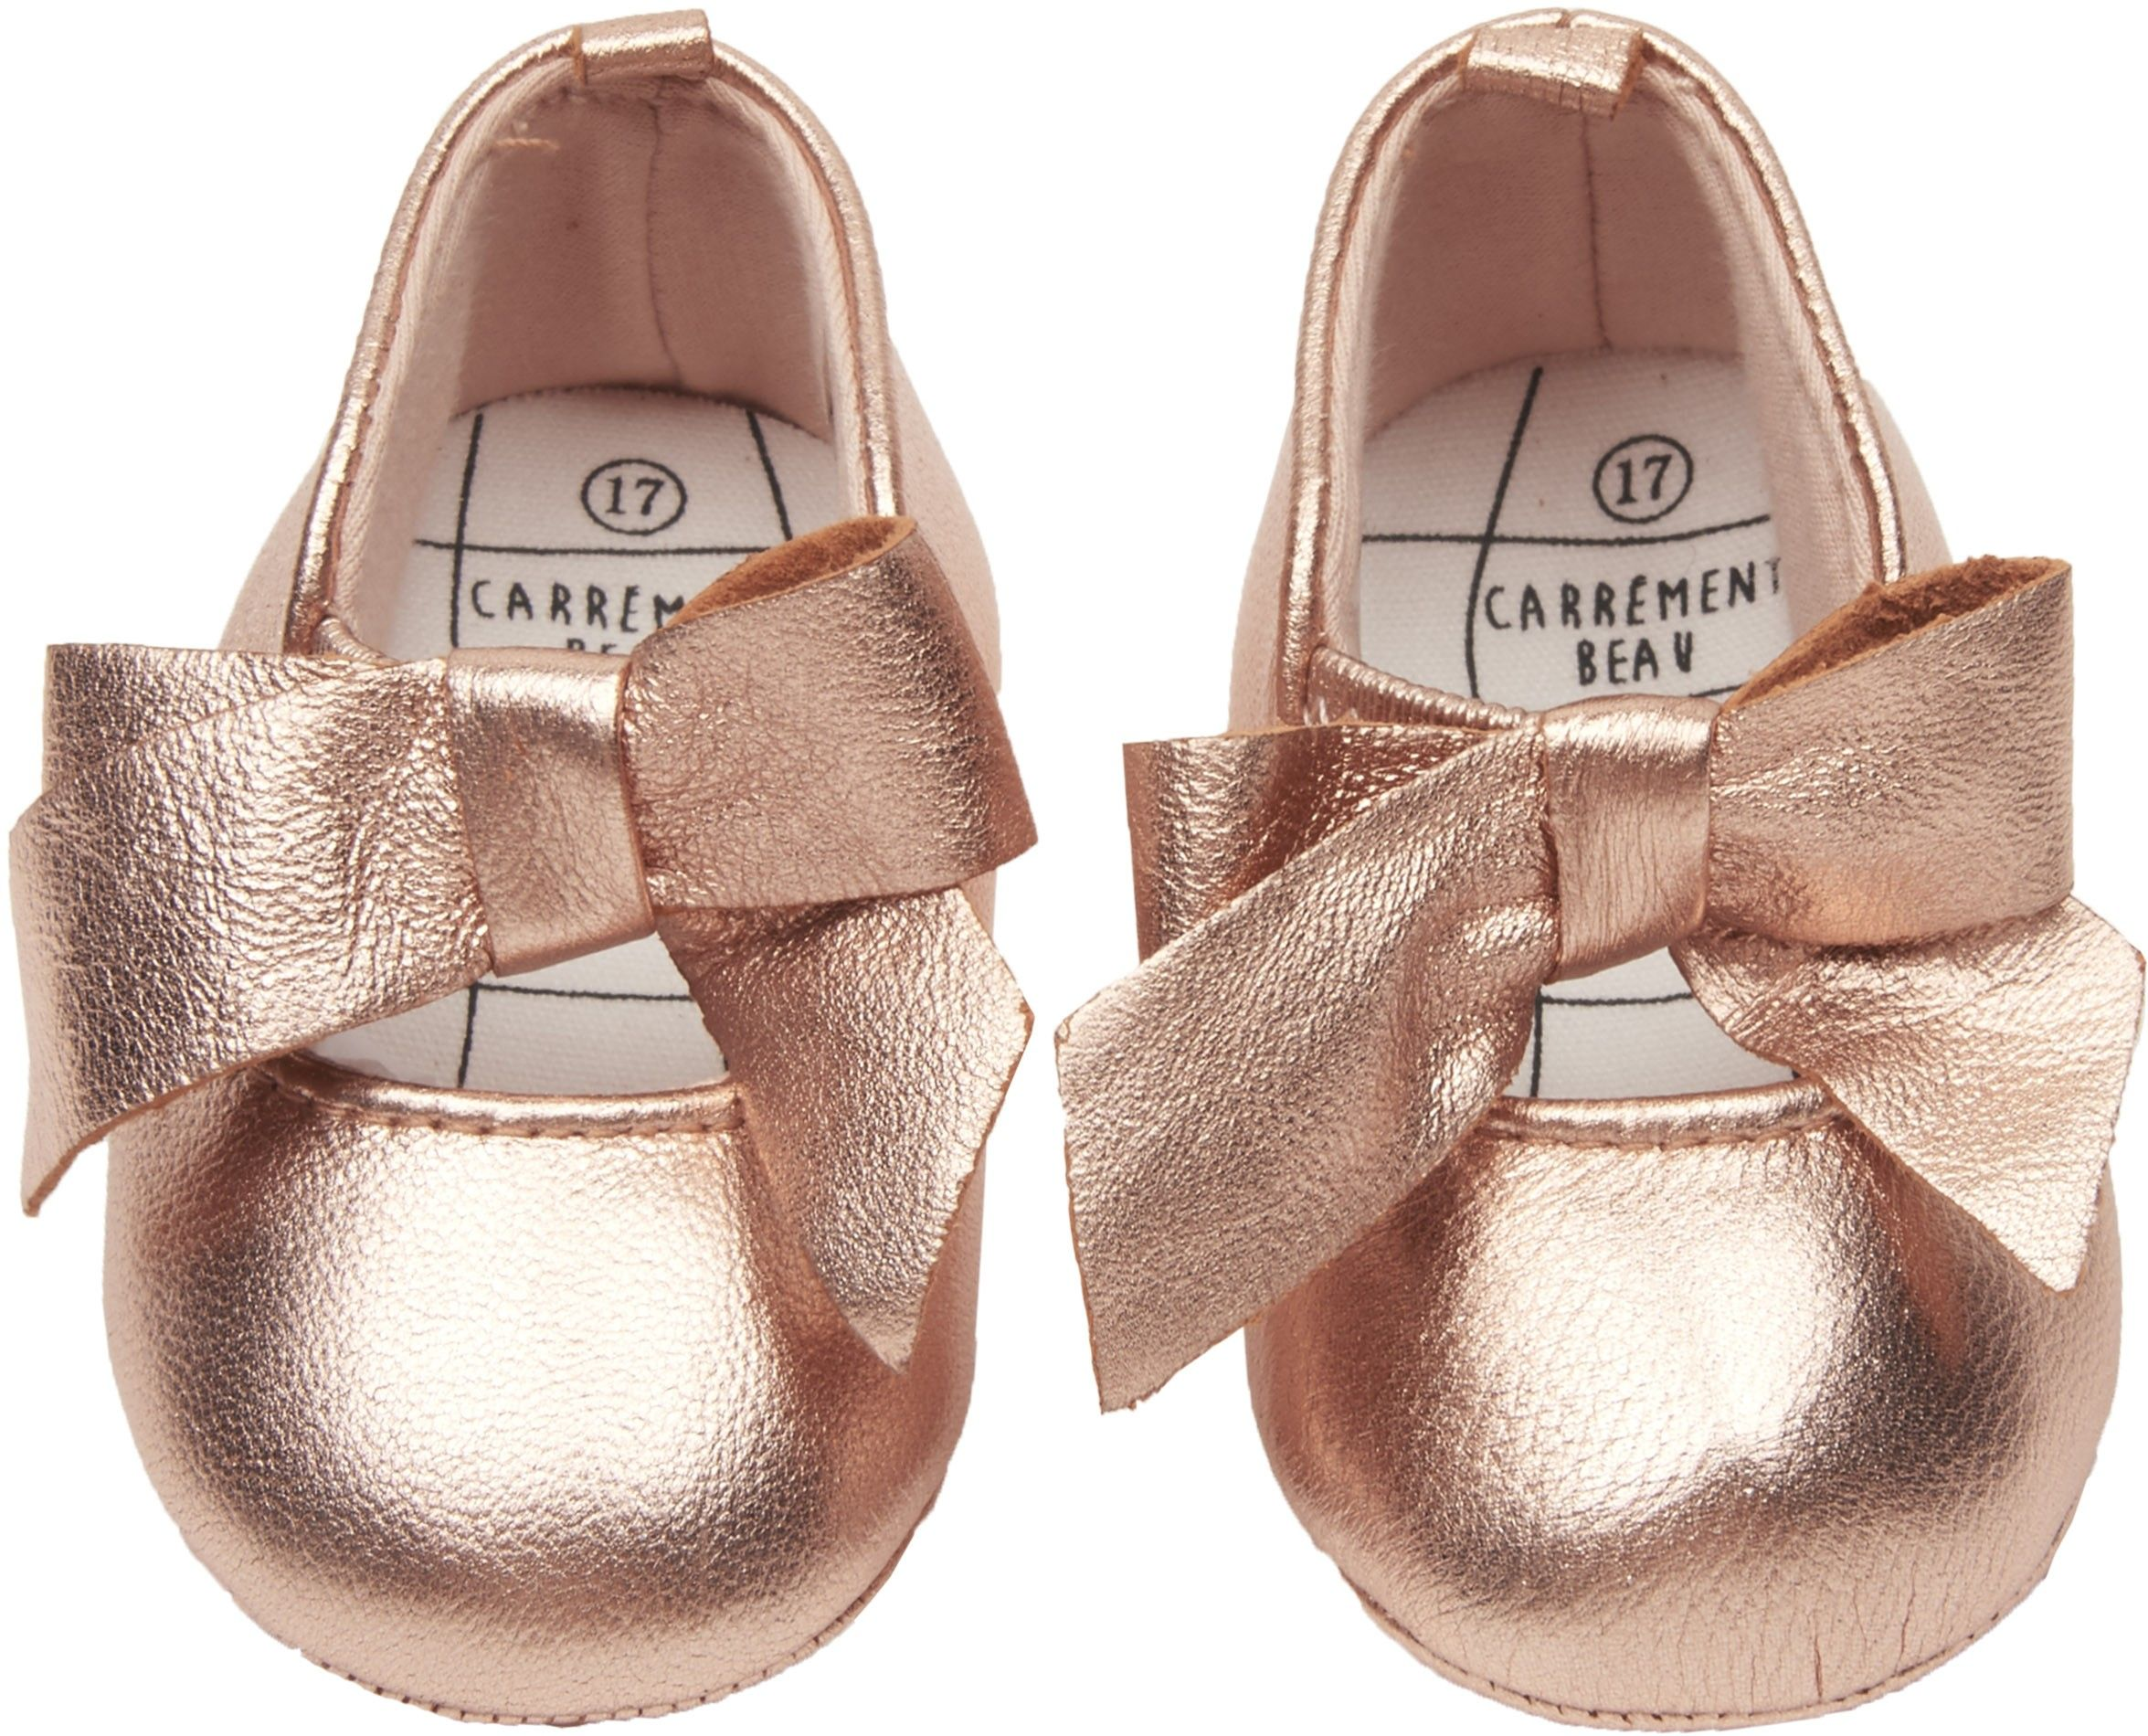 Shop The Carrement Beau Girls Bow Baby Shoes In Gold Browse The